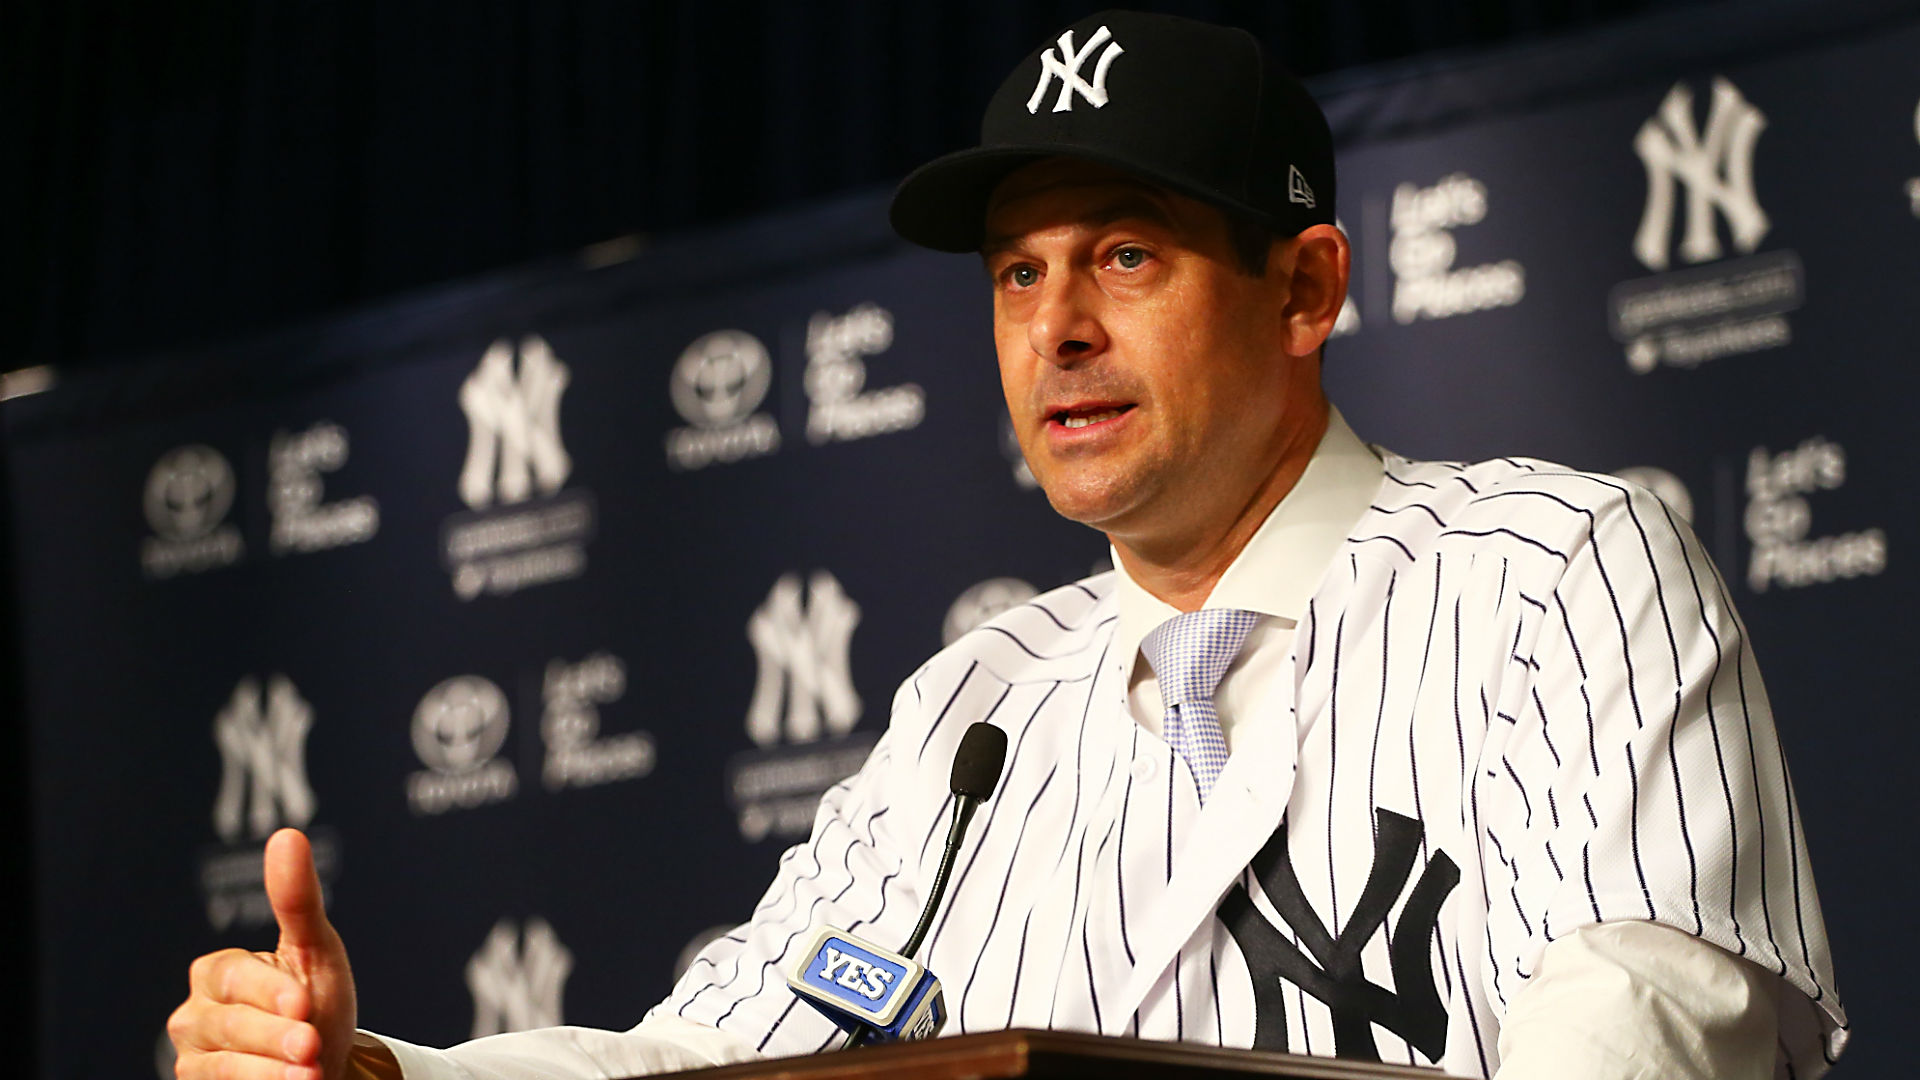 The biggest challenges Aaron Boone faces as Yankees manager